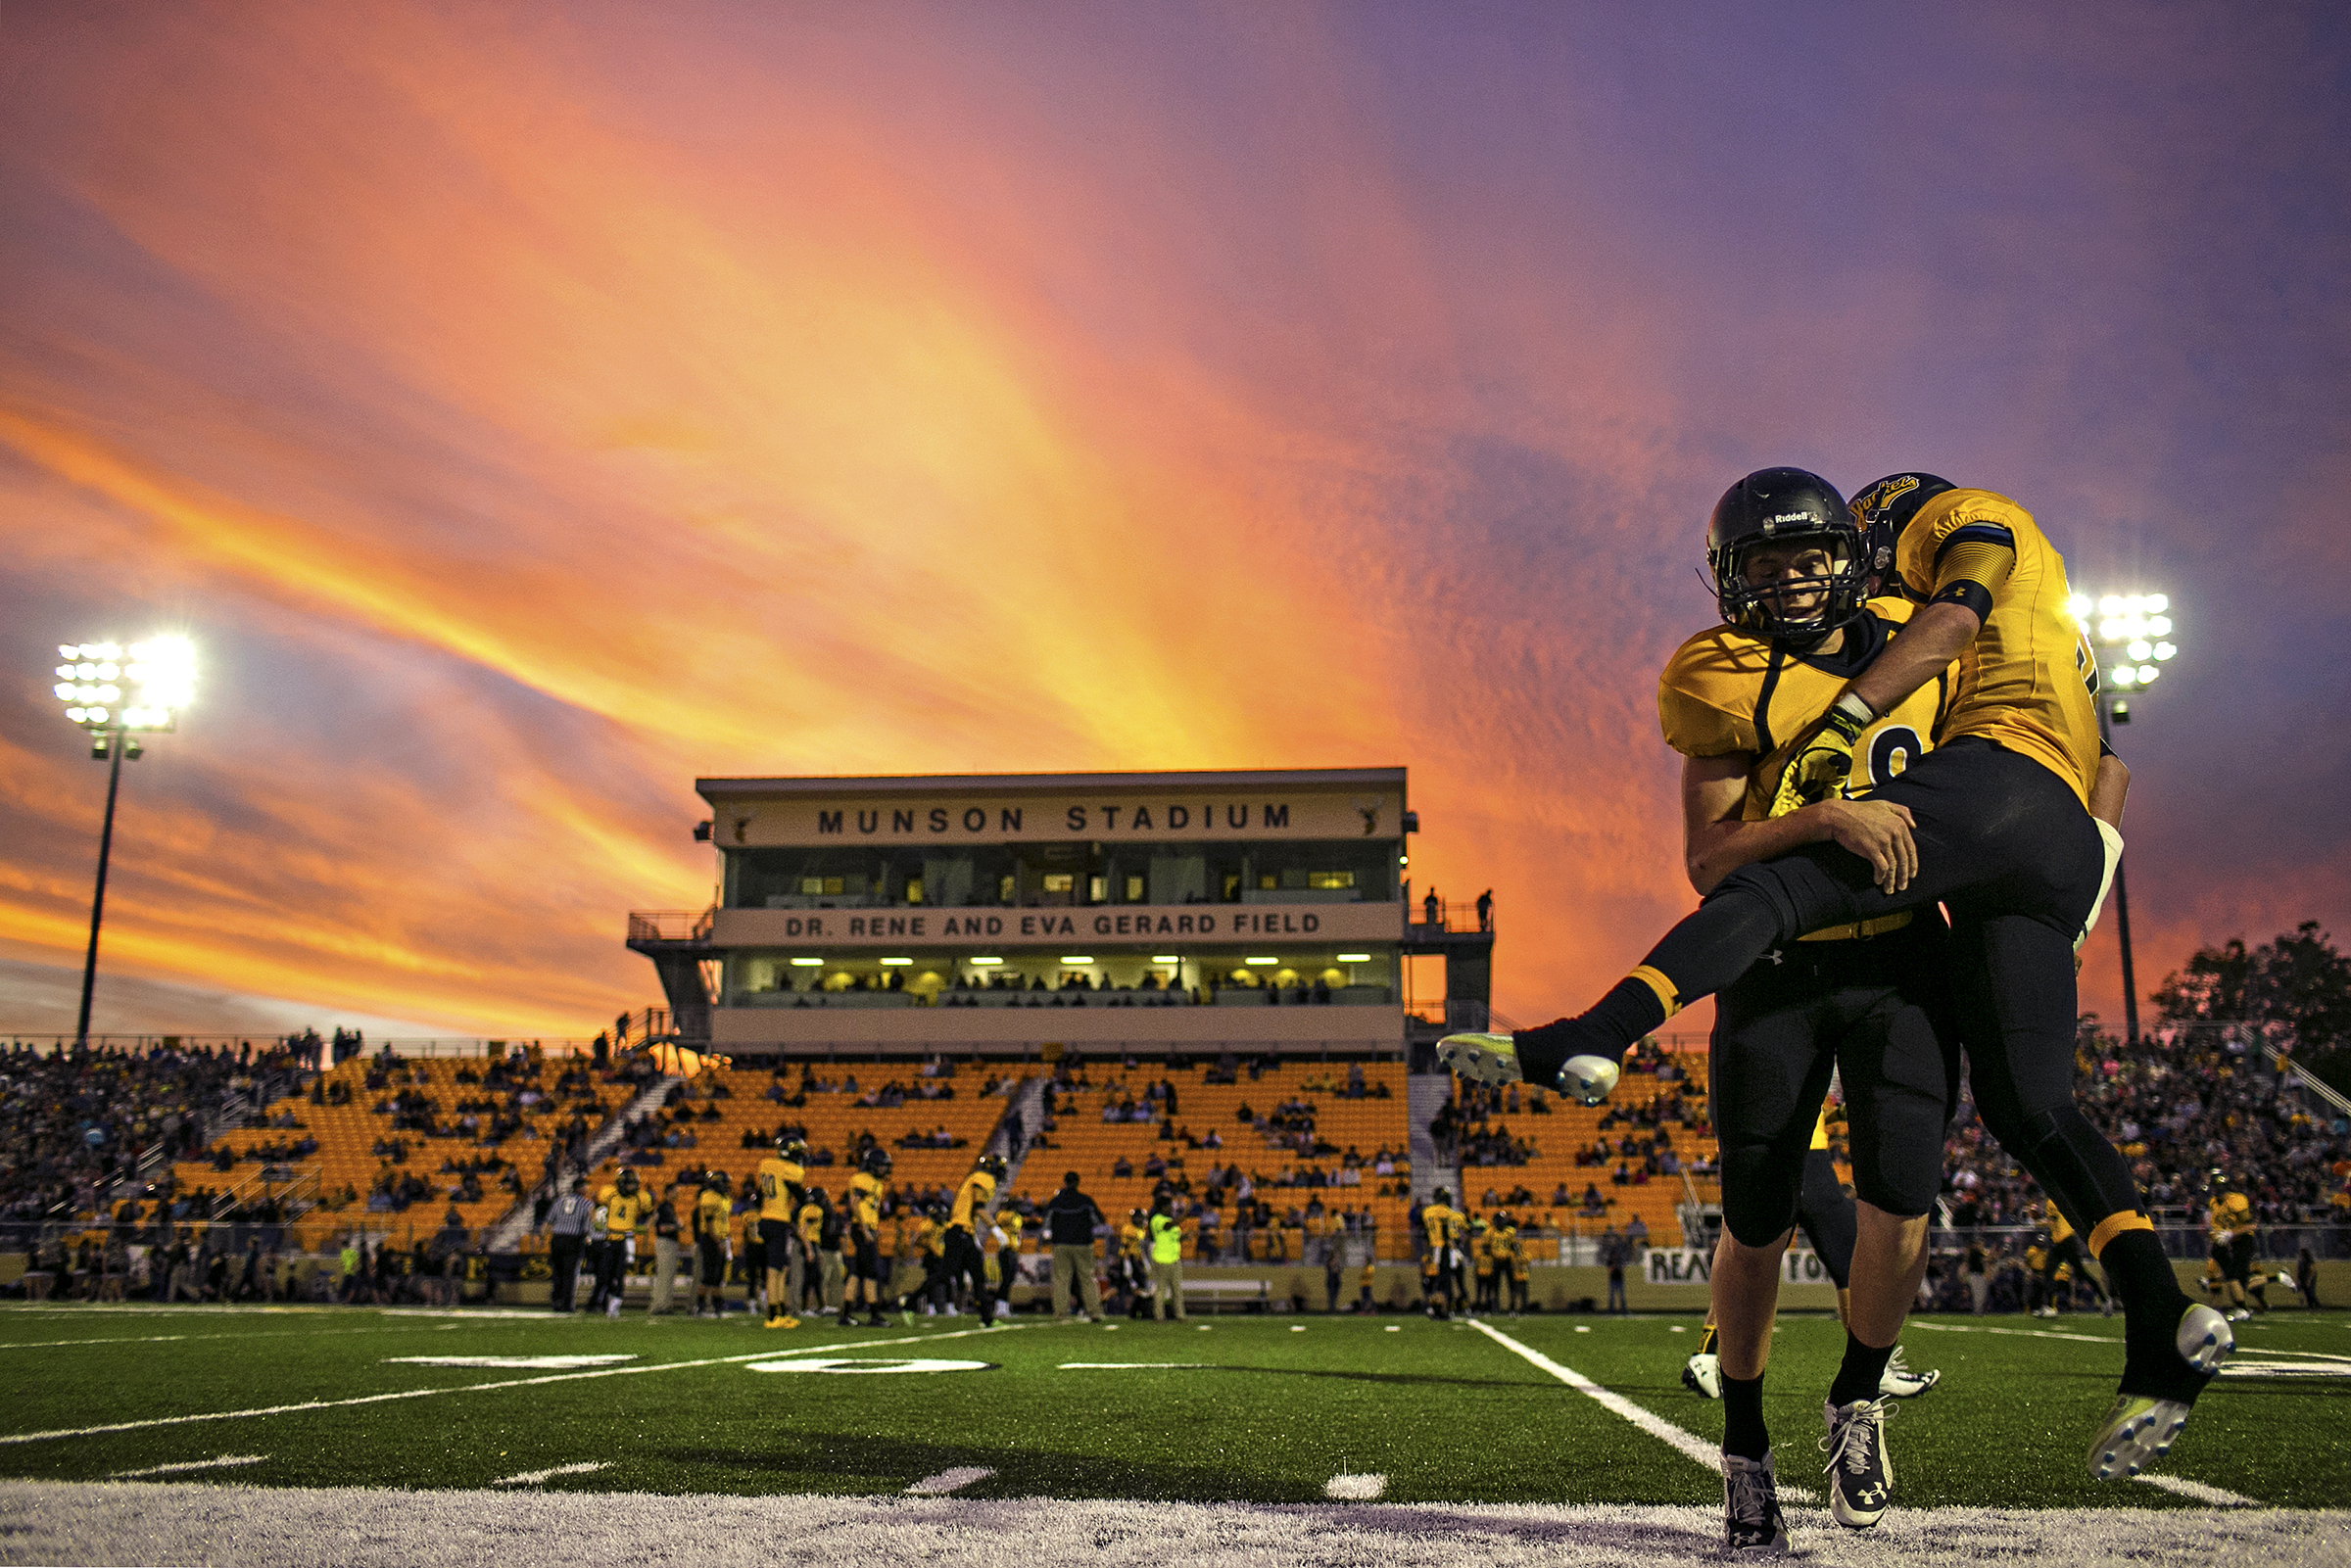 """Denison linebackers warm up in front of a burning sky prior to the Yellow Jackets' annual rivalry game against Sherman High School on Oct. 17, 2014 in Denison, Texas.The Denison-Sherman annual rivalry game, known as """"The Battle of the Axe,"""" is the longest continuously played rivalry game in the state of Texas, dating back to 1901. The winner of the annual game takes possession of an axe-shaped trophy which has the scores of every game engraved in its blade.During this year's edition of """"The Battle of the Axe,"""" Denison dominated Sherman 42-20 on their way to picking up the school's 40th rivalry win and keep the axe in Denison for the second year in a row."""